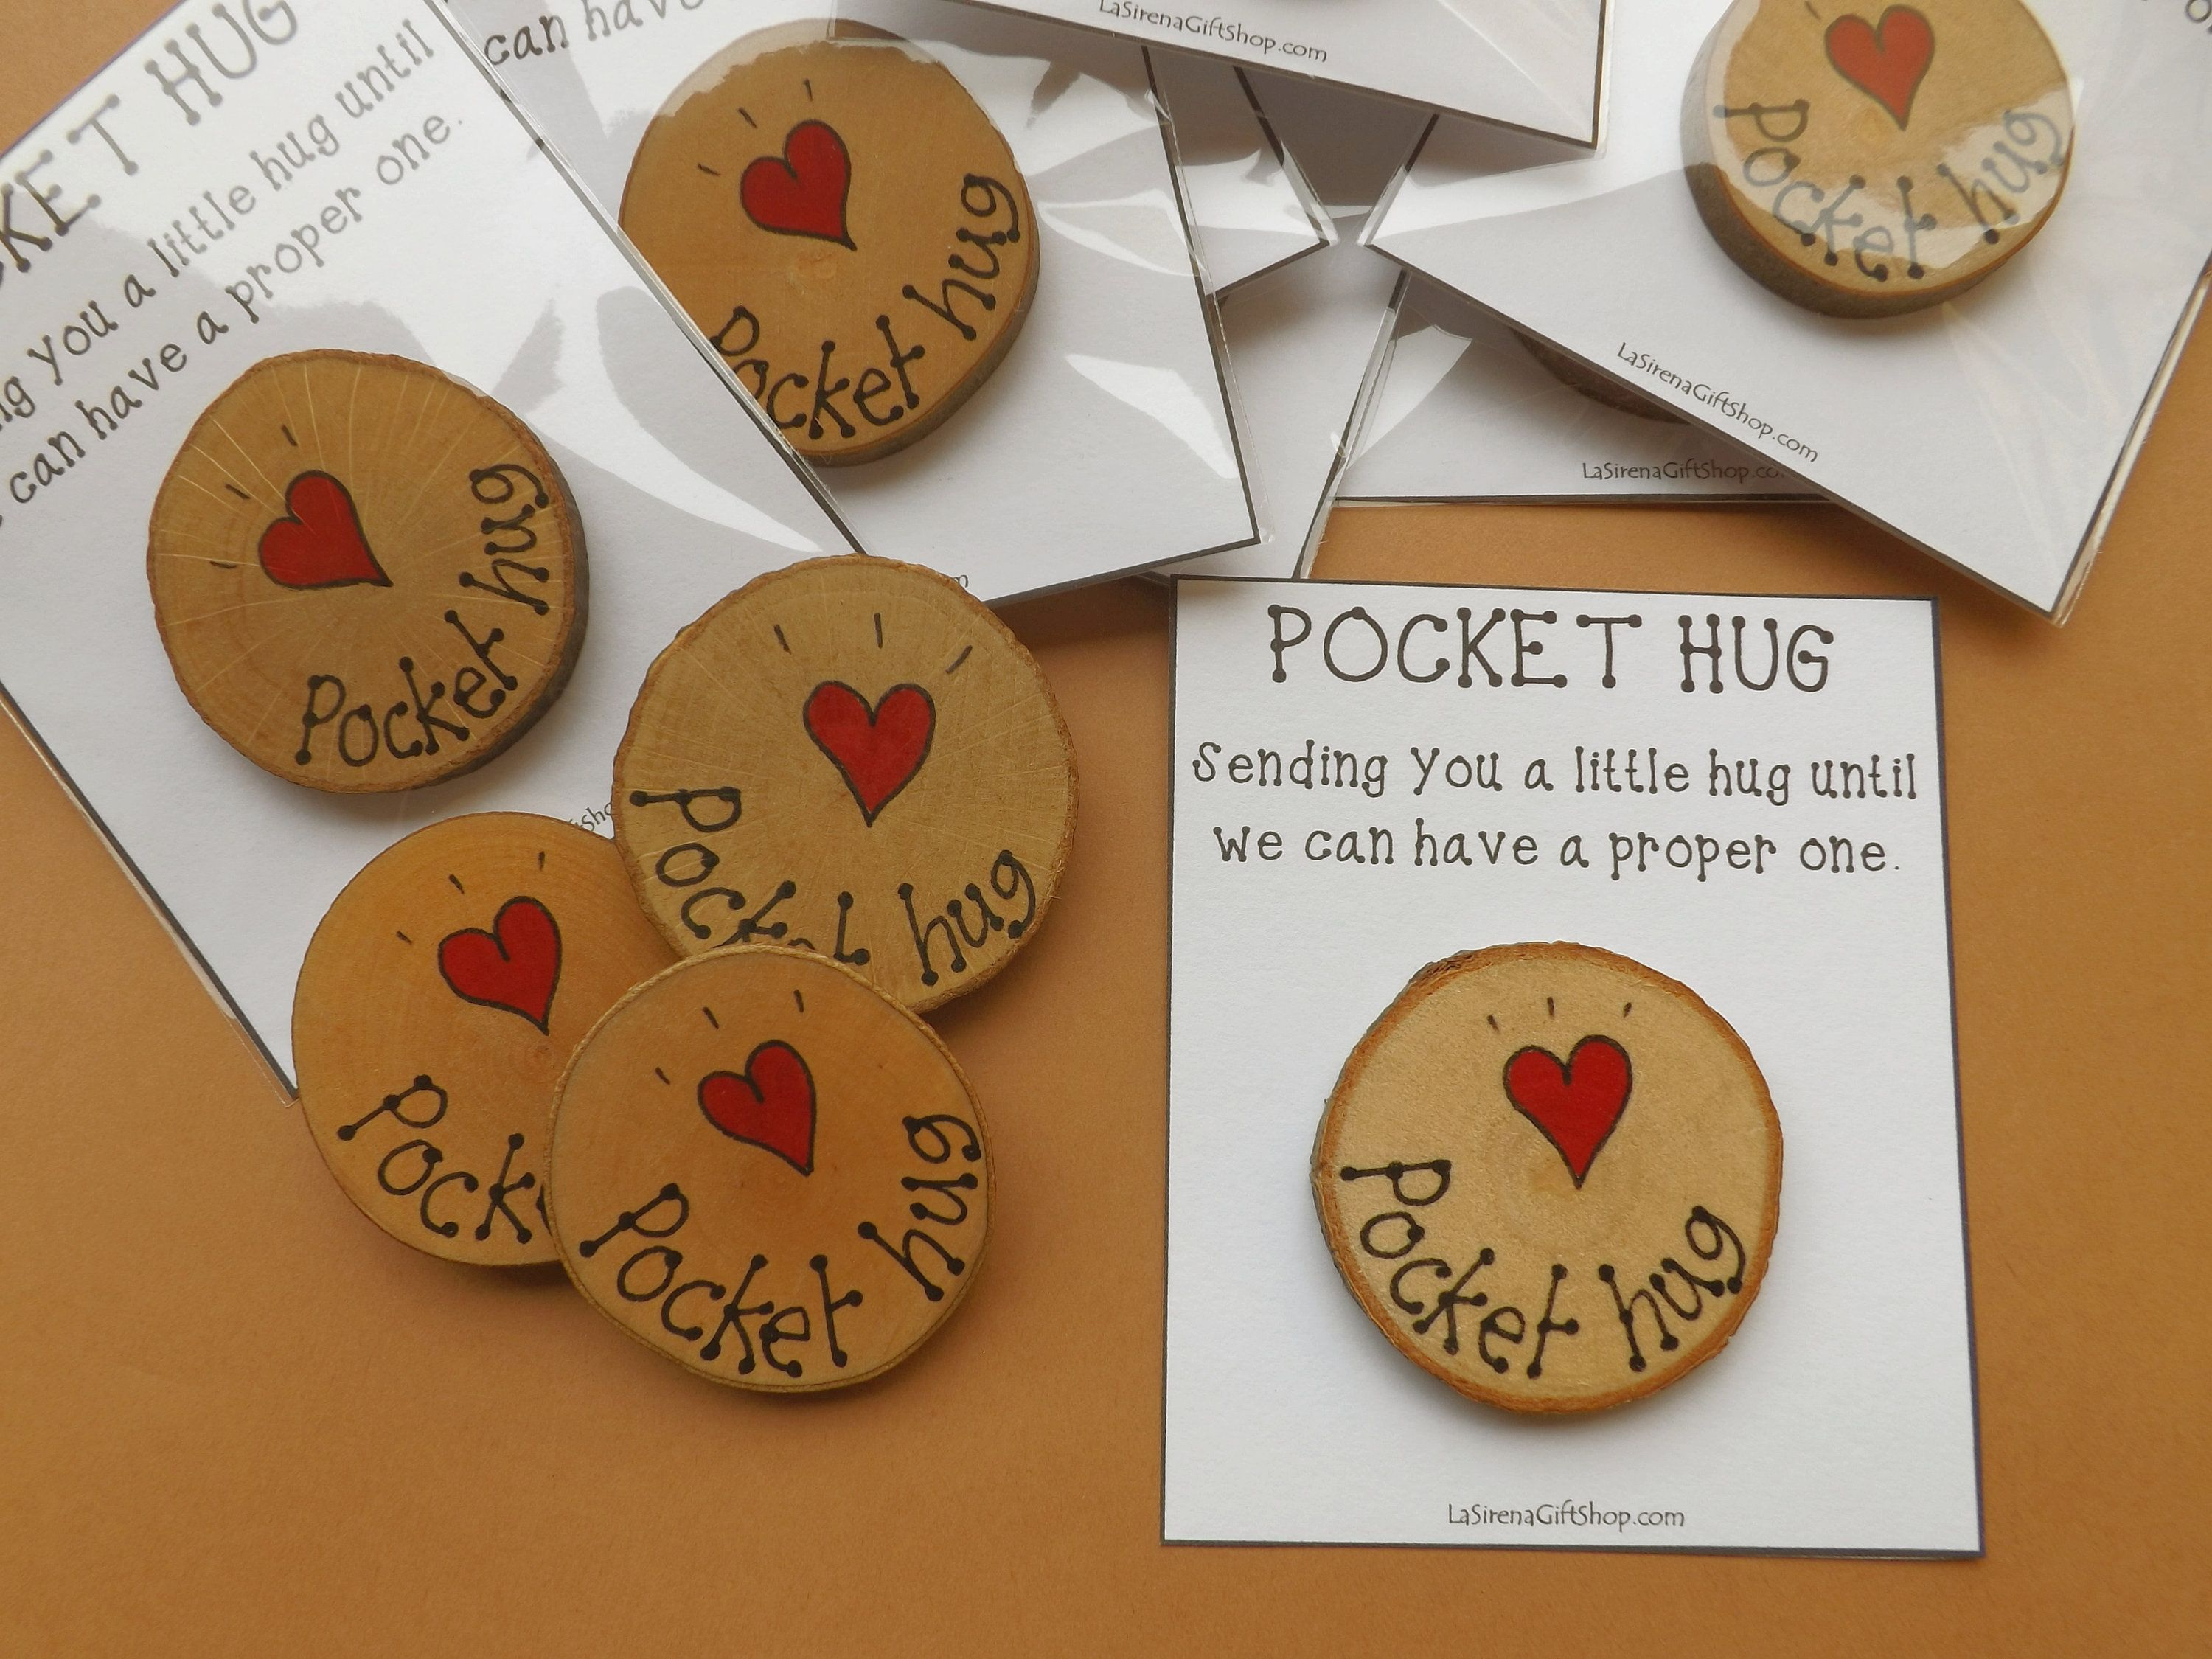 Pocket Hug Small Wood Slice Customisable Card Lockdown Etsy In 2021 Small Valentines Gifts Hand Painted Gifts Button Christmas Cards